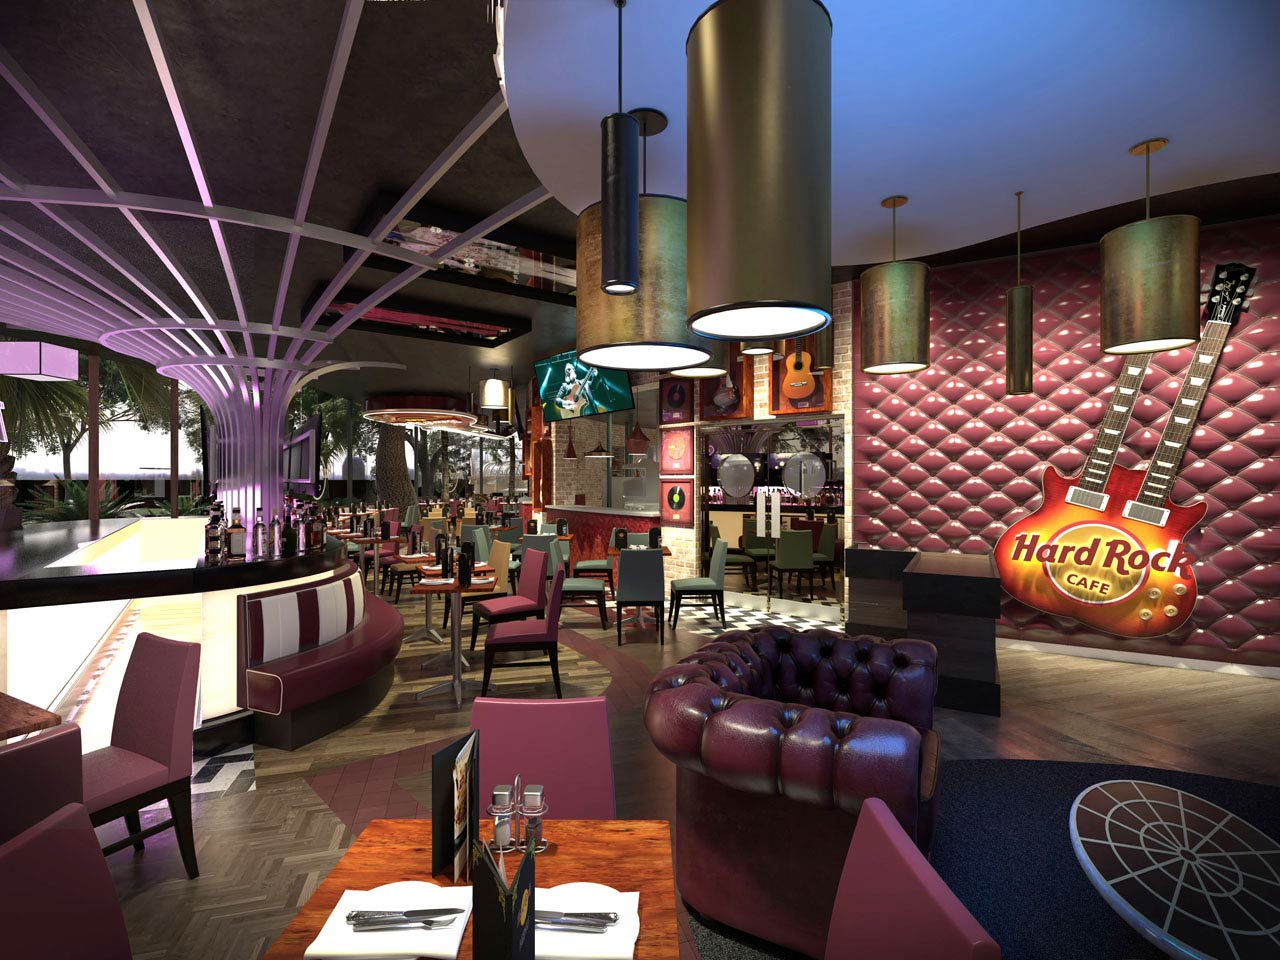 Hard Rock Café interior CGI showing the walls covered in rock 'n' roll memorabilia